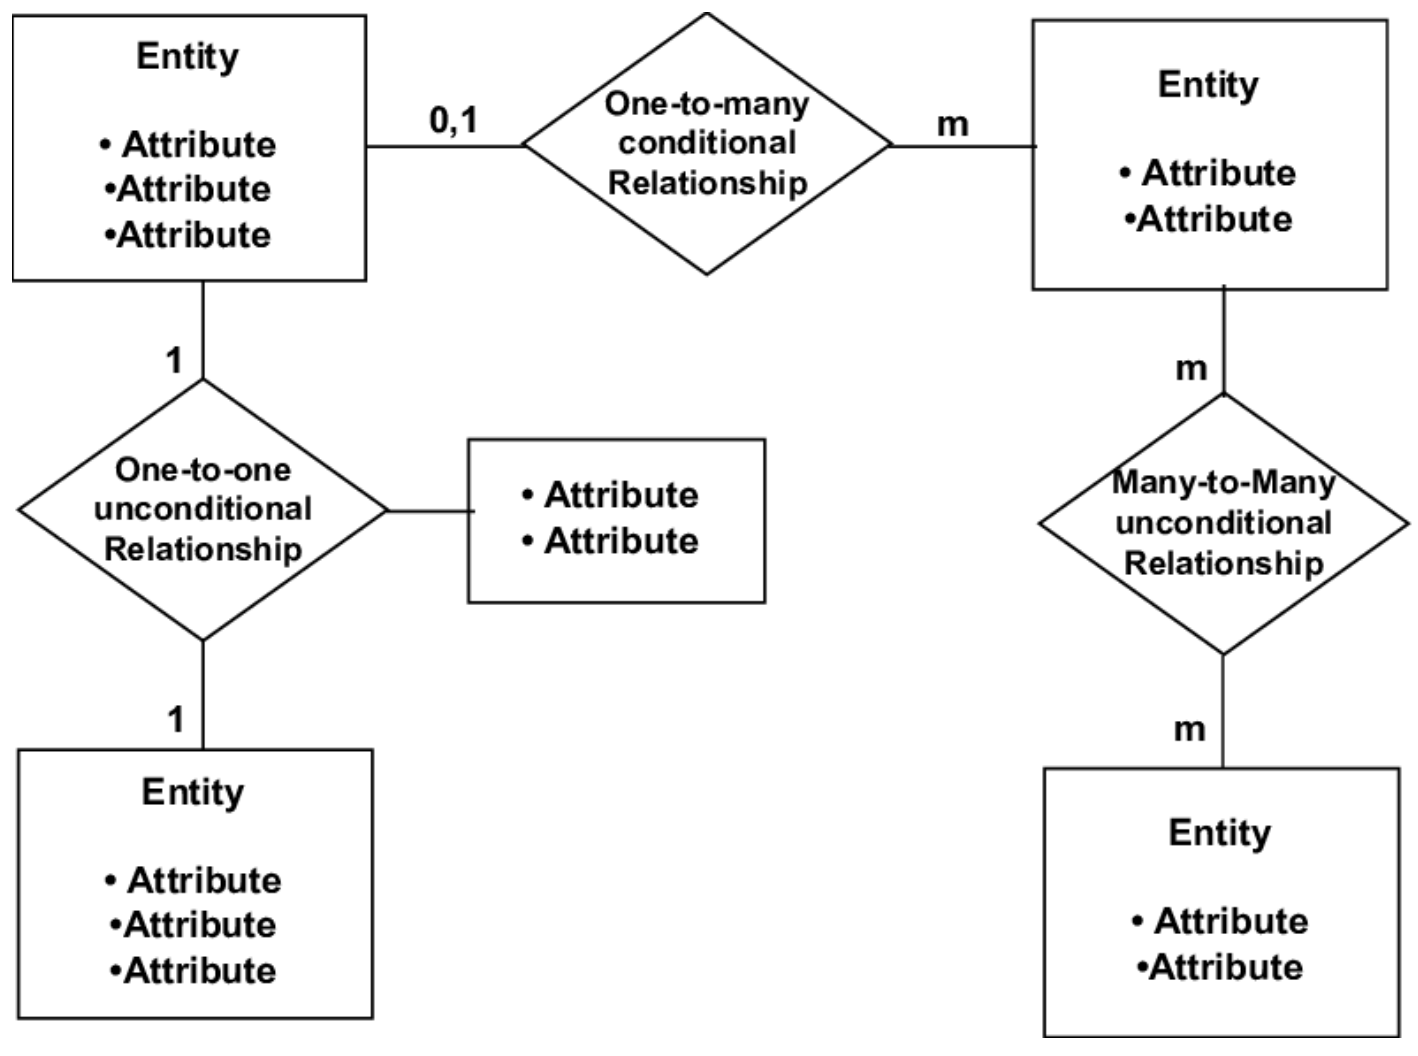 What Is An Entity Diagram (Erd)?. An Entity Relationship